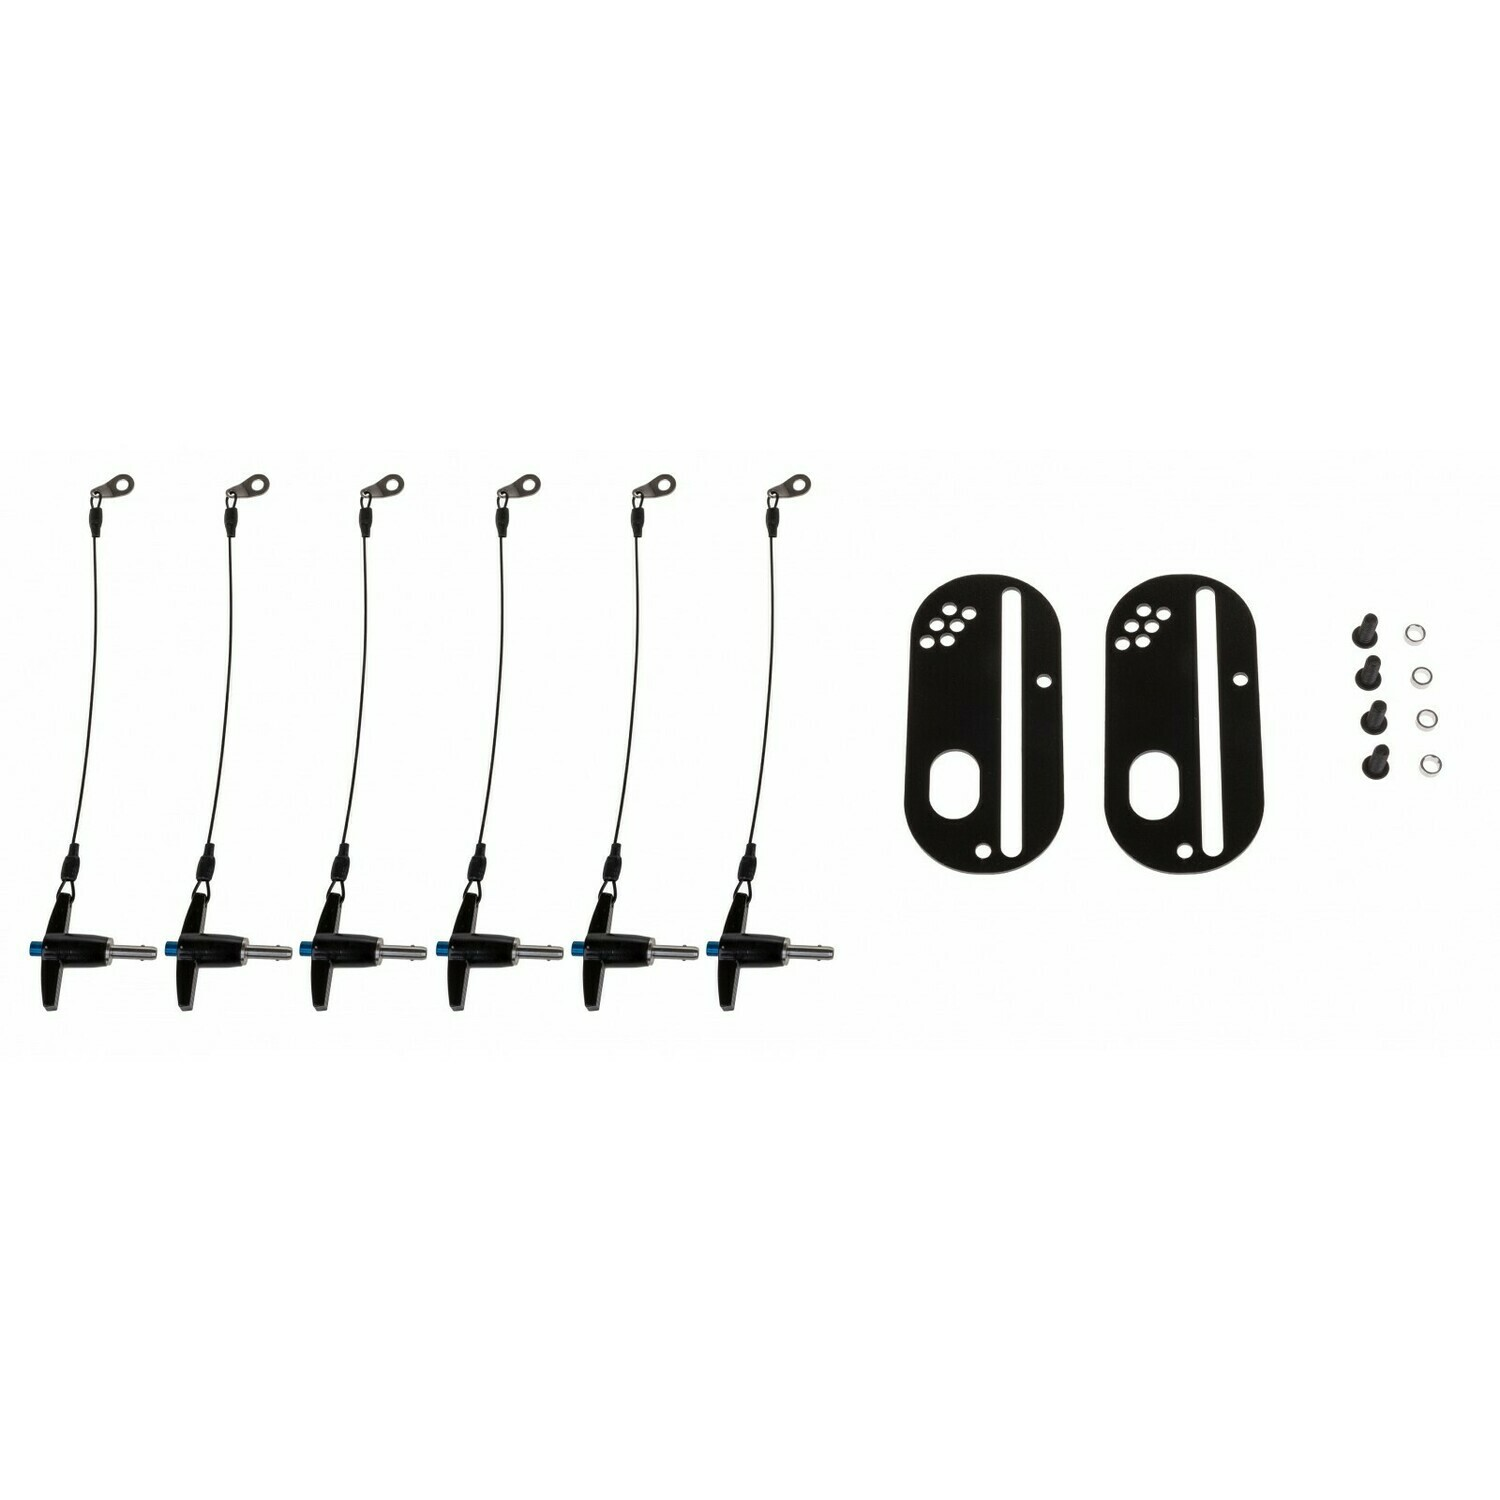 Briteq BT-BLINDER2 IP RIGGING SET